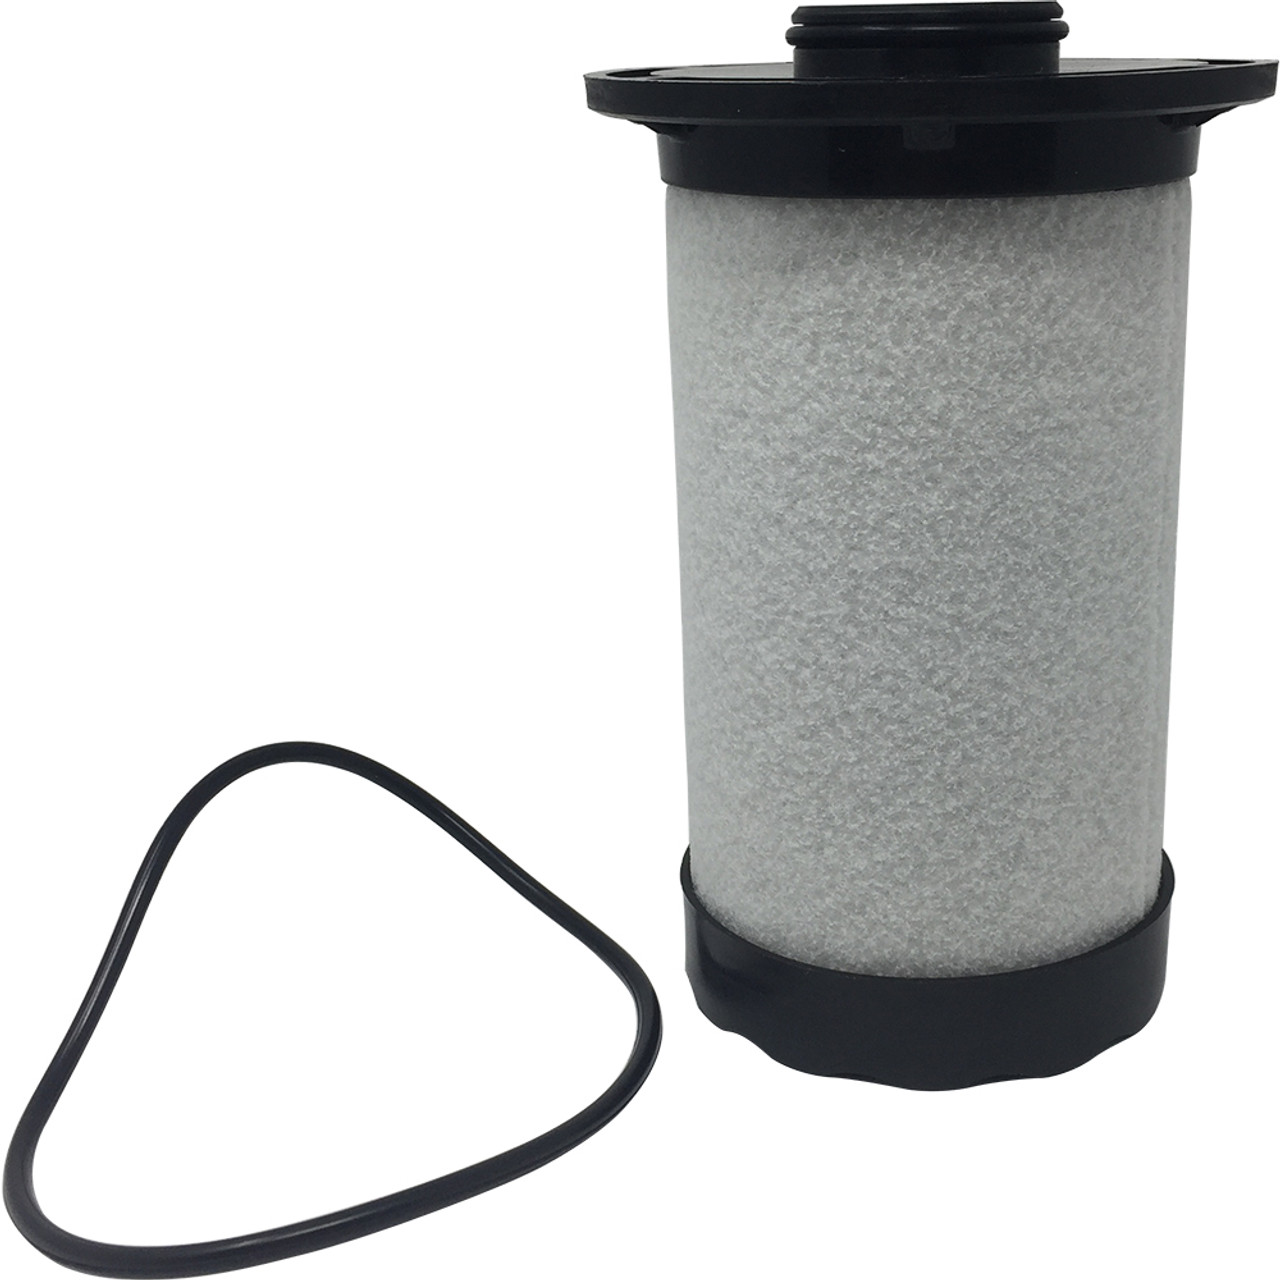 OEM Equivalent. Ingersoll Rand 39231998 Replacement Filter Element